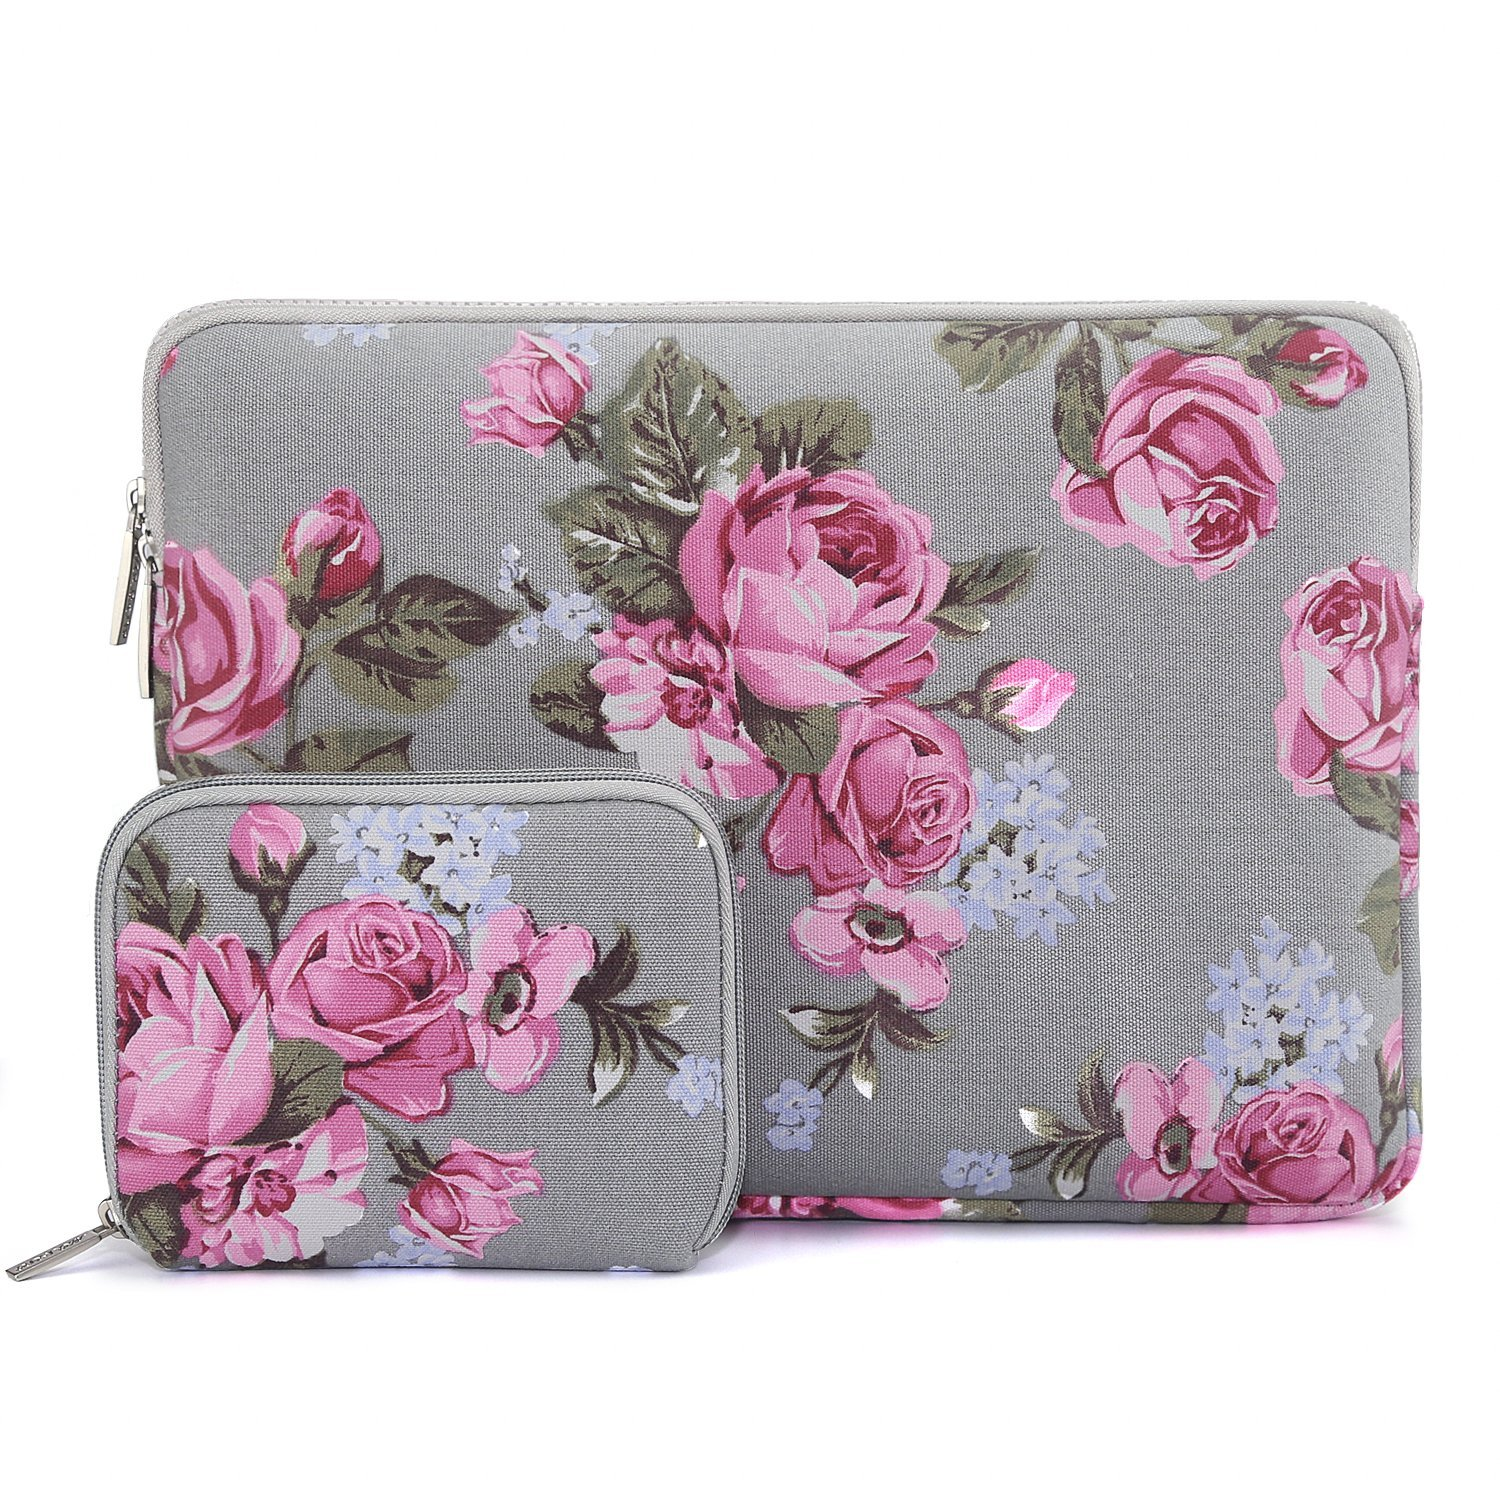 Mosiso 2017/2016 MacBook Pro 13 Inch Sleeve (A1706/A1708)/Microsoft New Surface Pro 2017/Surface Pro 4/3 Peony Pattern Canvas Laptop Bag Protective Carrying Cover with Small Case, Gray